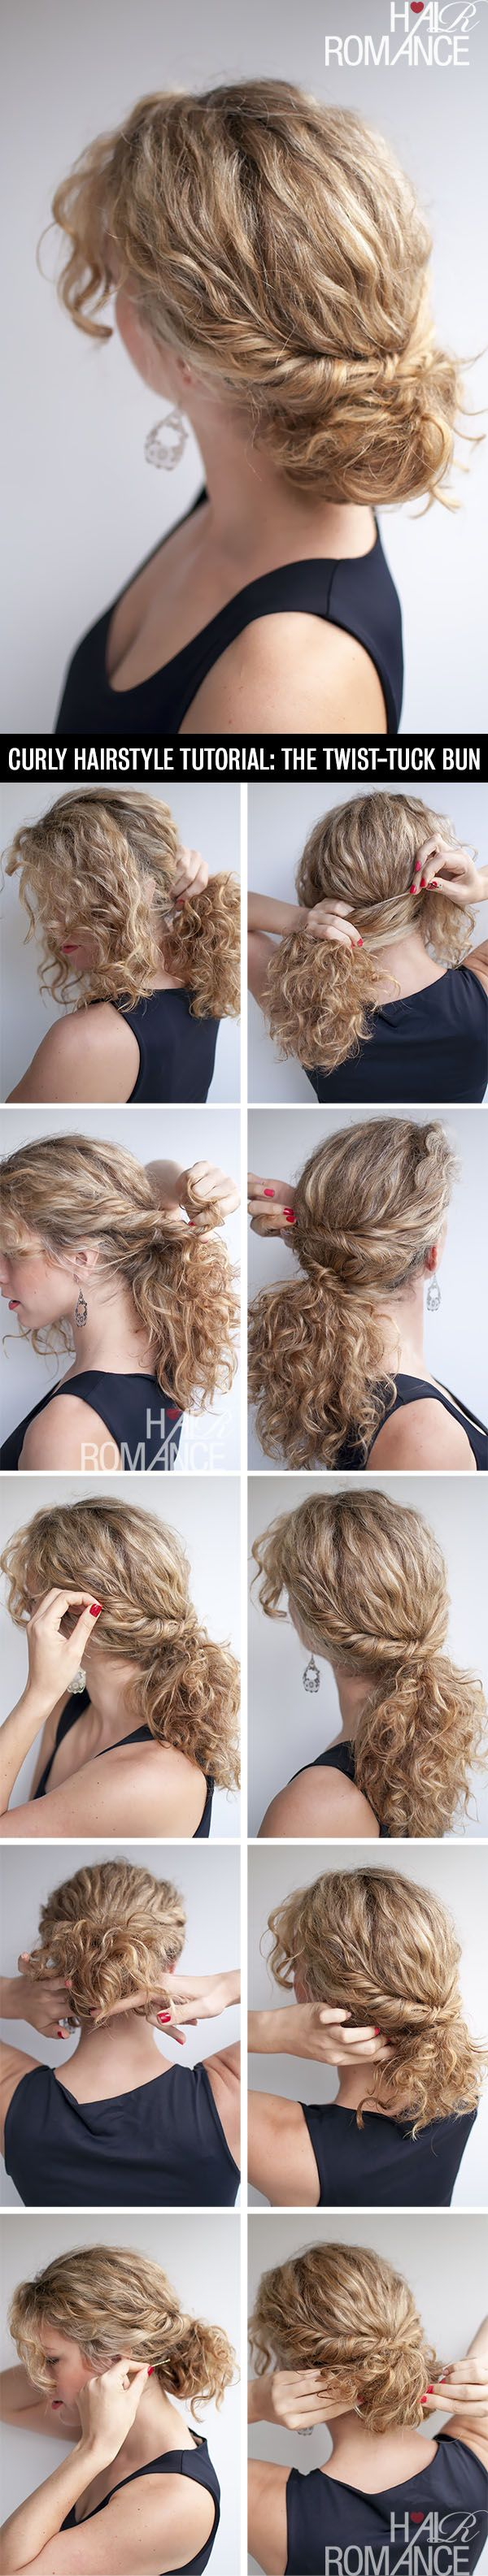 Hair Romance - curly hairstyle tutorial - the twist-tuck bun